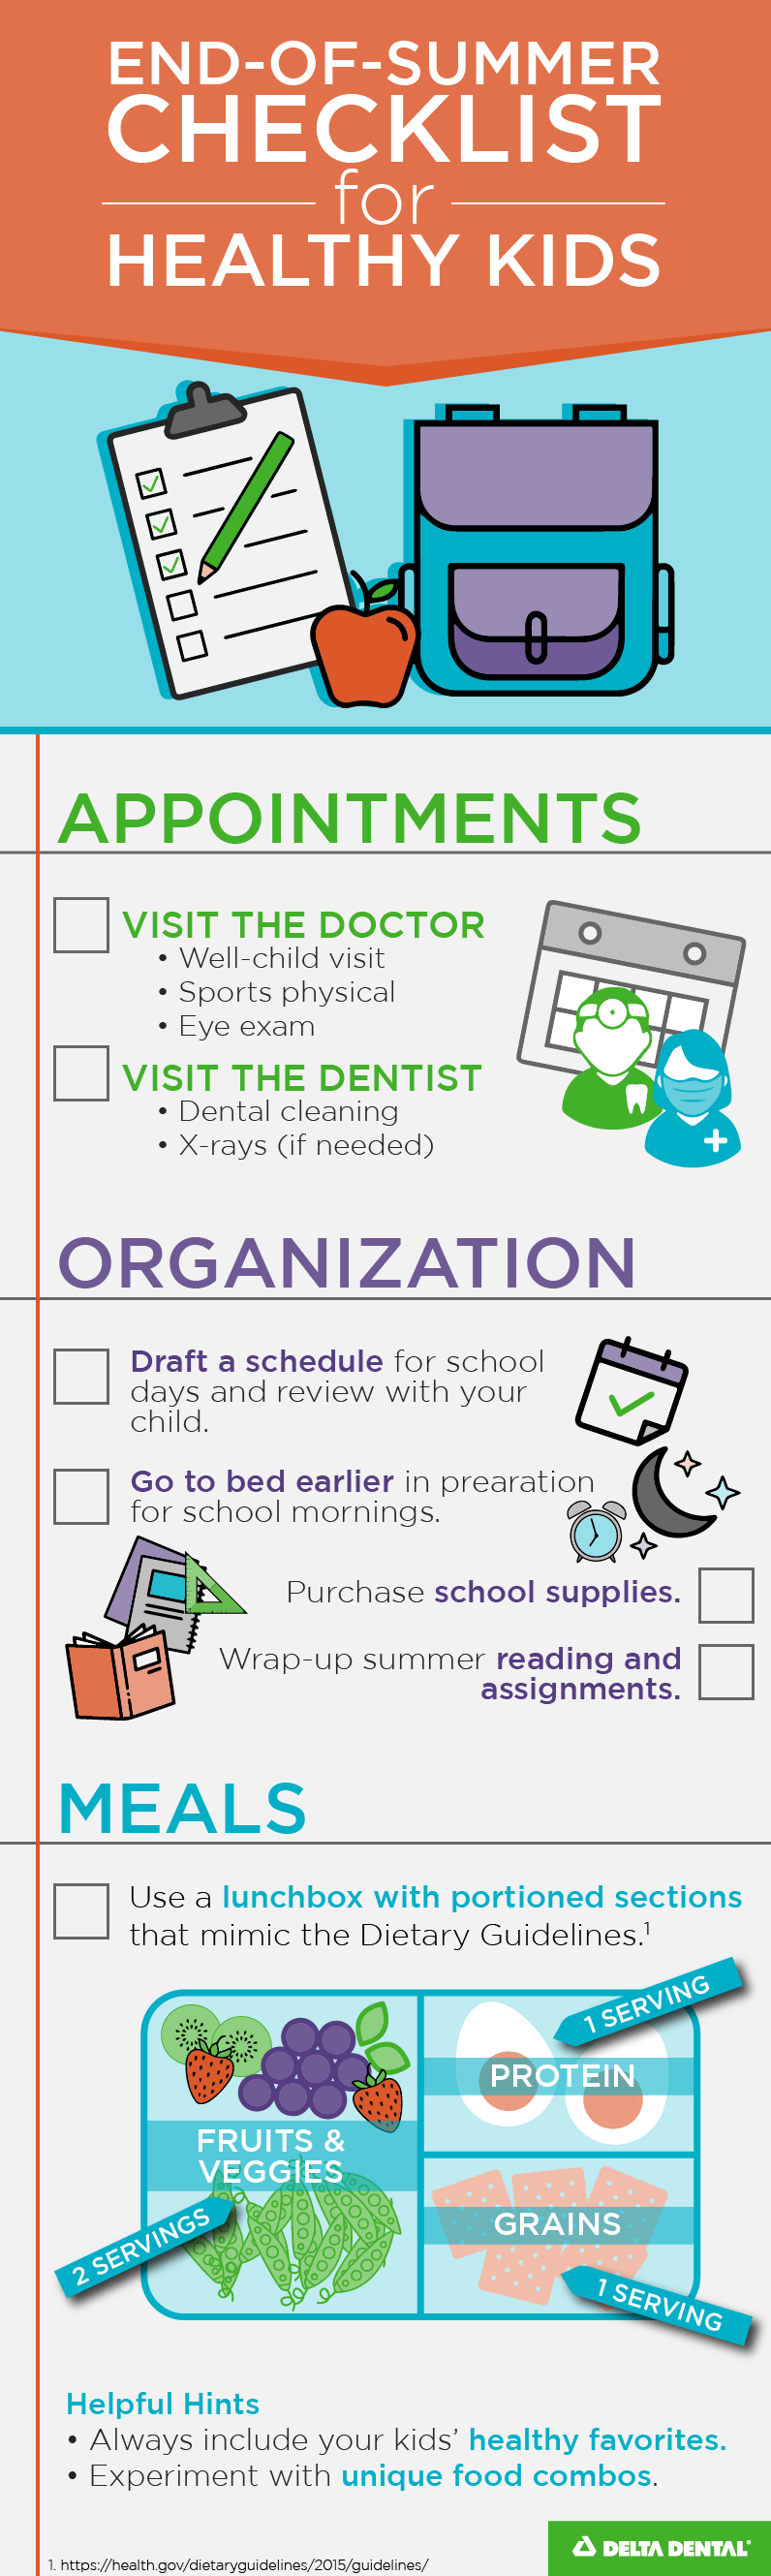 End of summer checklist for healthy kids